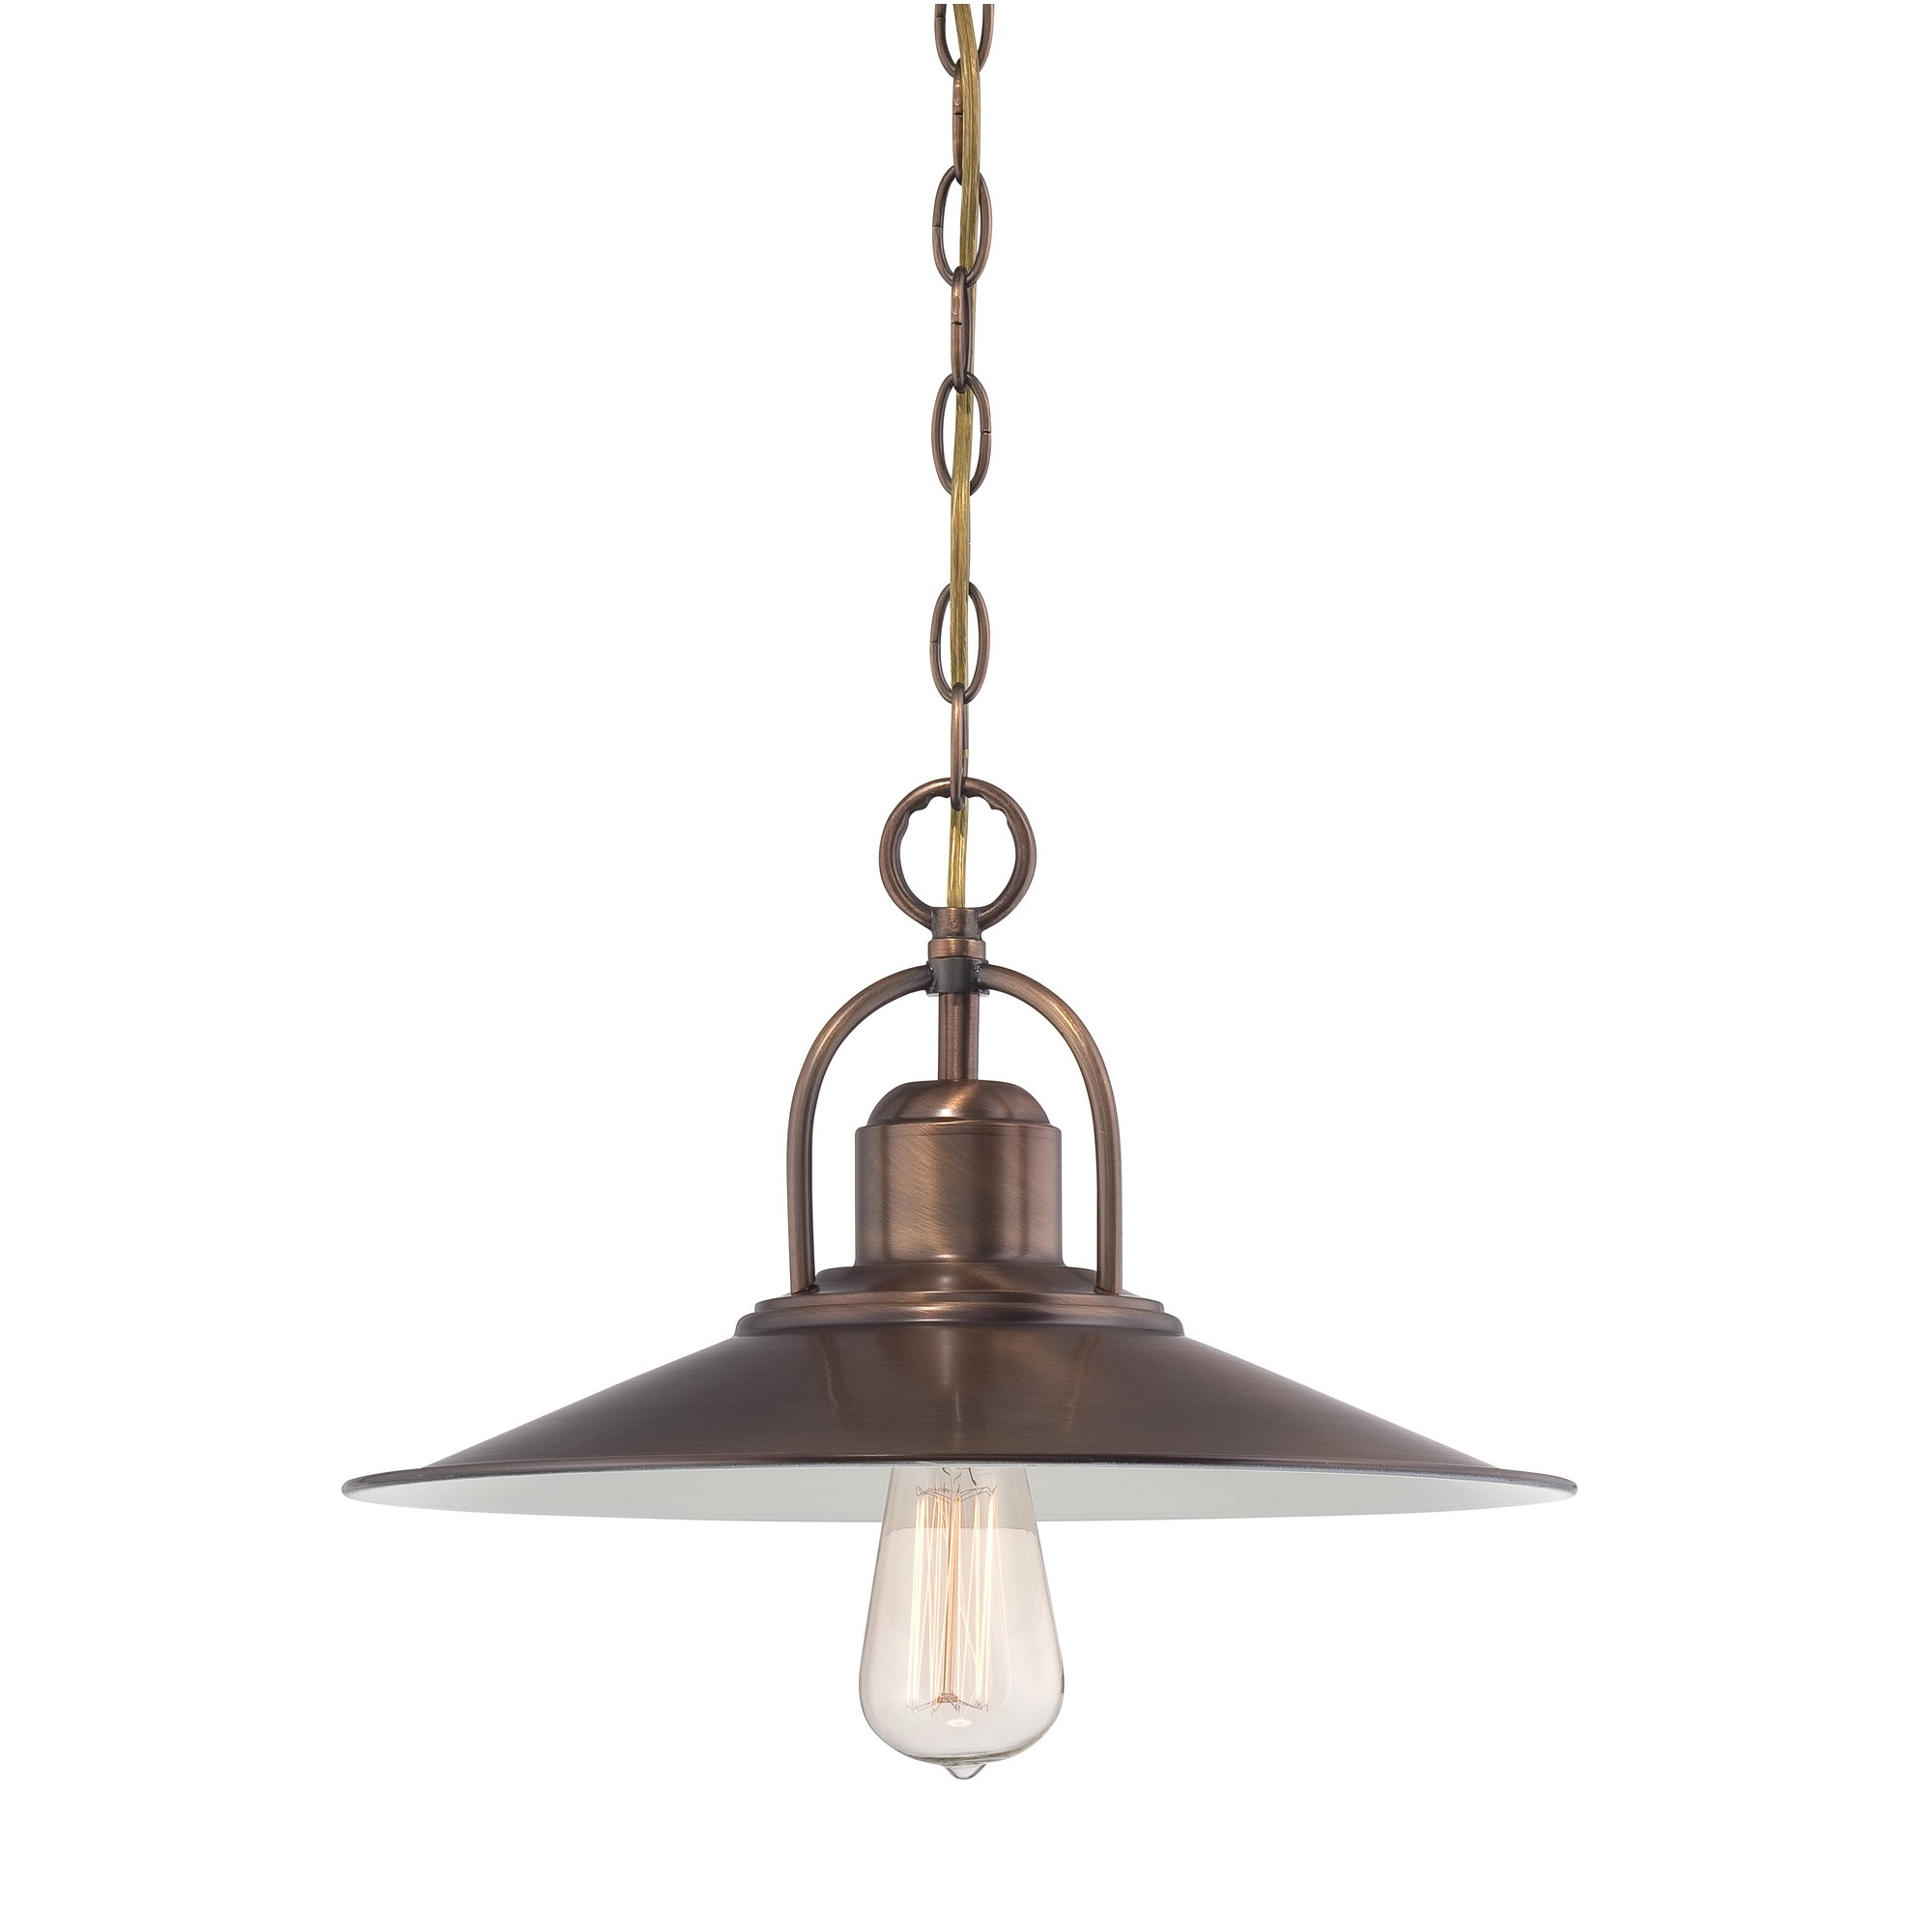 Designers Fountain Lighting Designers Fountain Newbury Station 1 Light Mini Pendant L